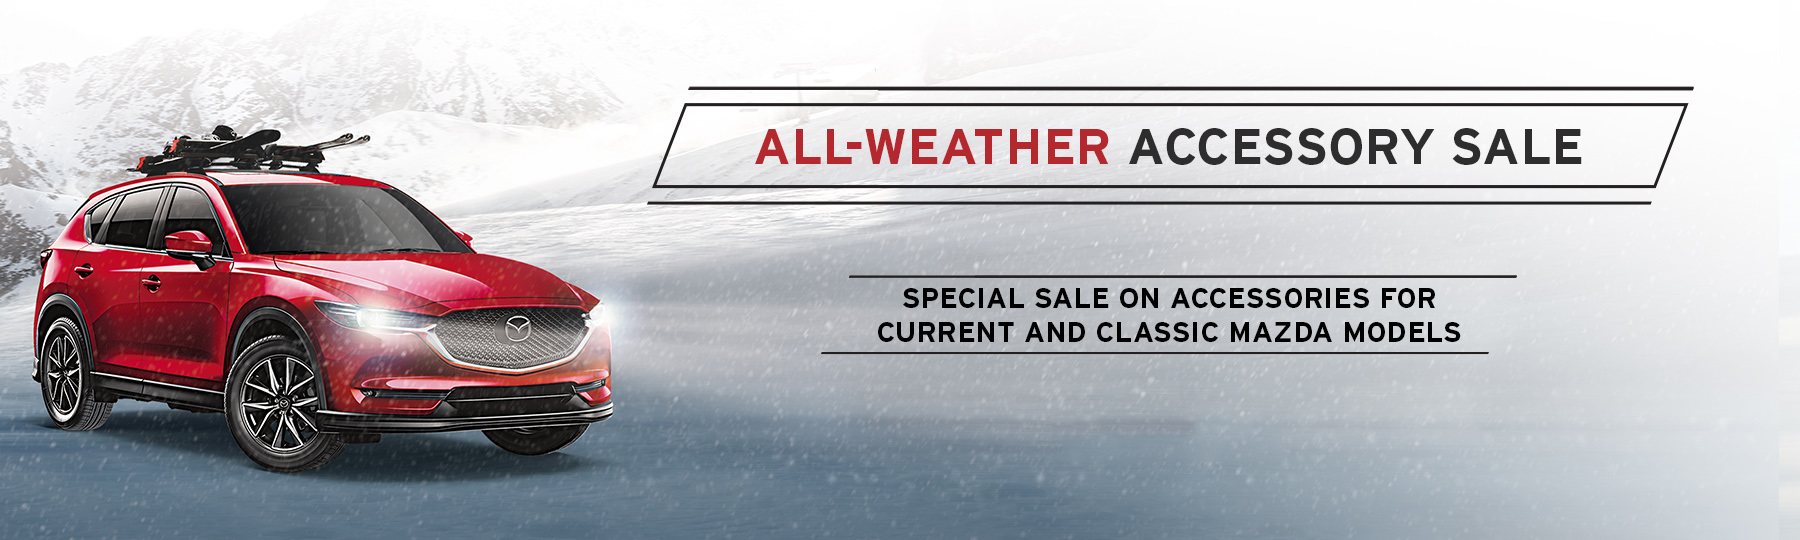 The Angevaare Mazda All- Weather Accessory Sale -  A special sale on accessories for current and classic Mazda Models